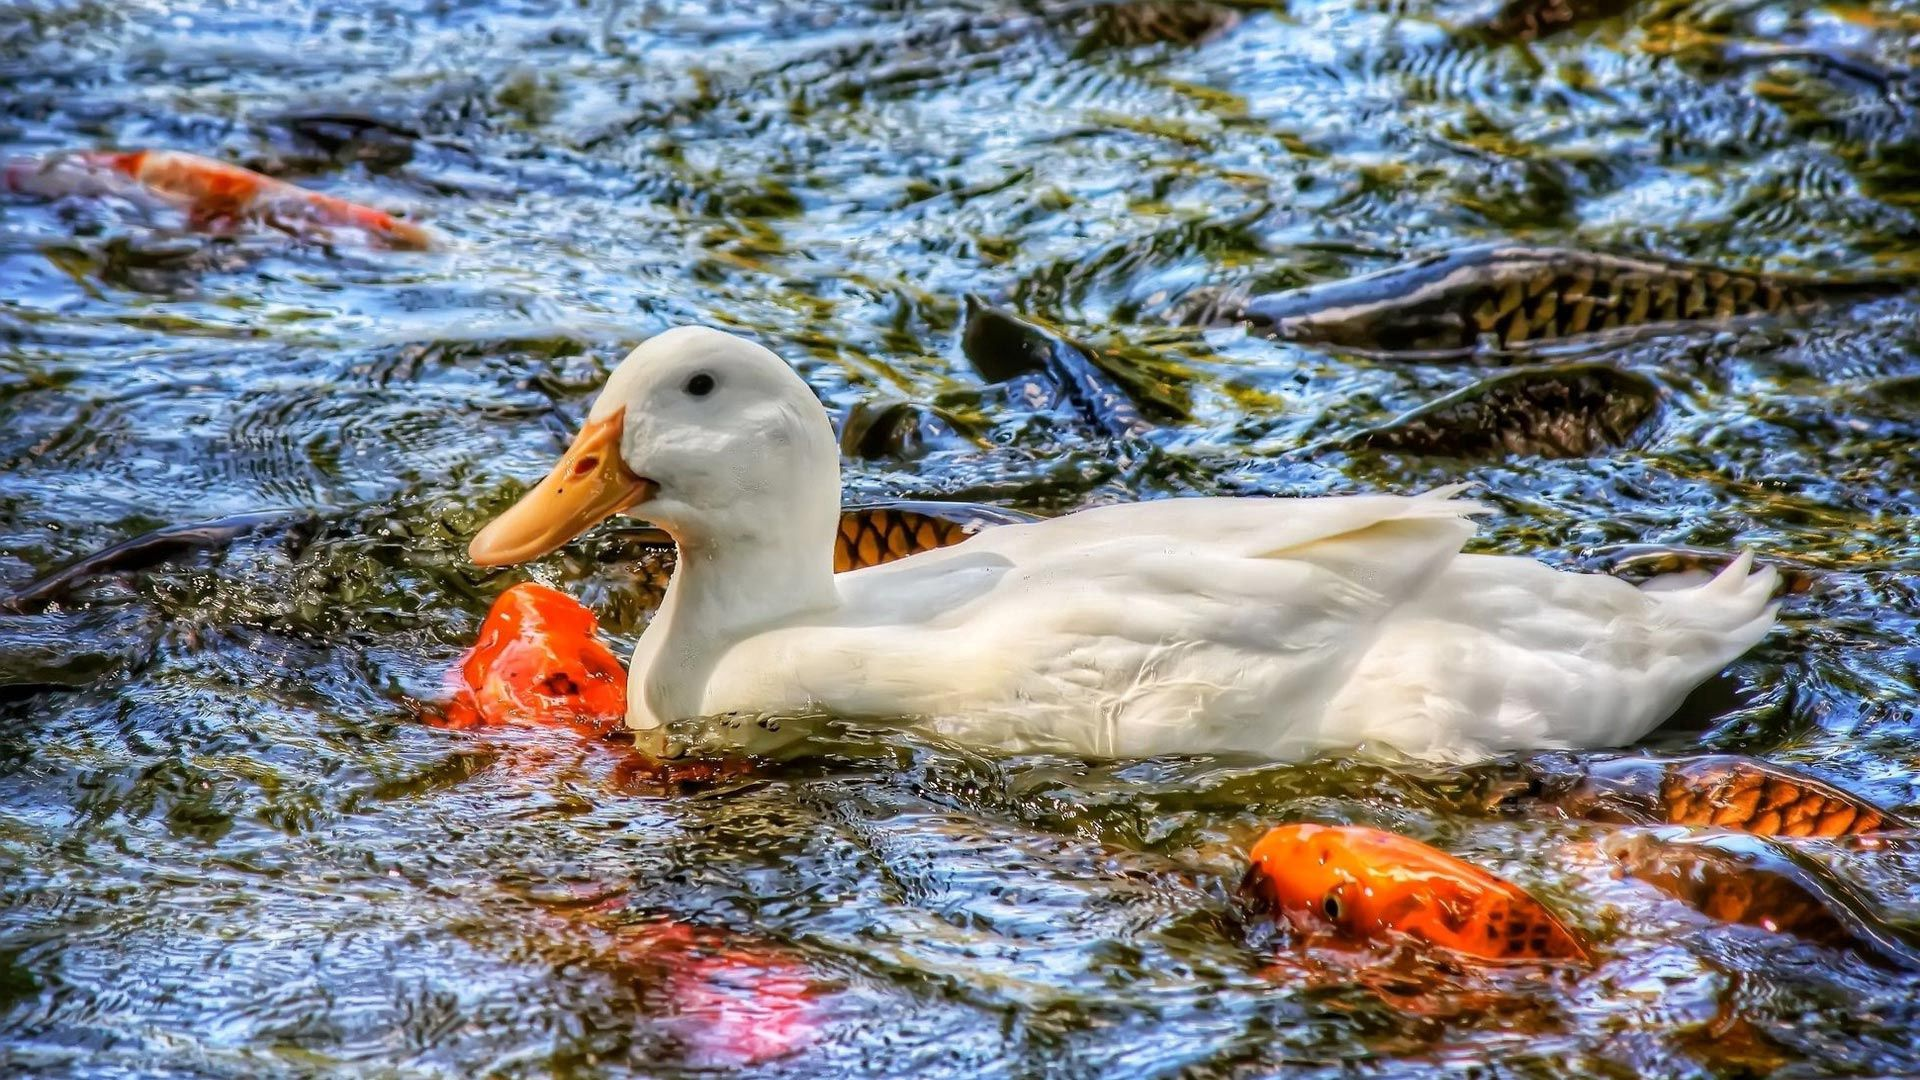 133299 download wallpaper Animals, Carp, Water, Basin, Duck, Fishes screensavers and pictures for free